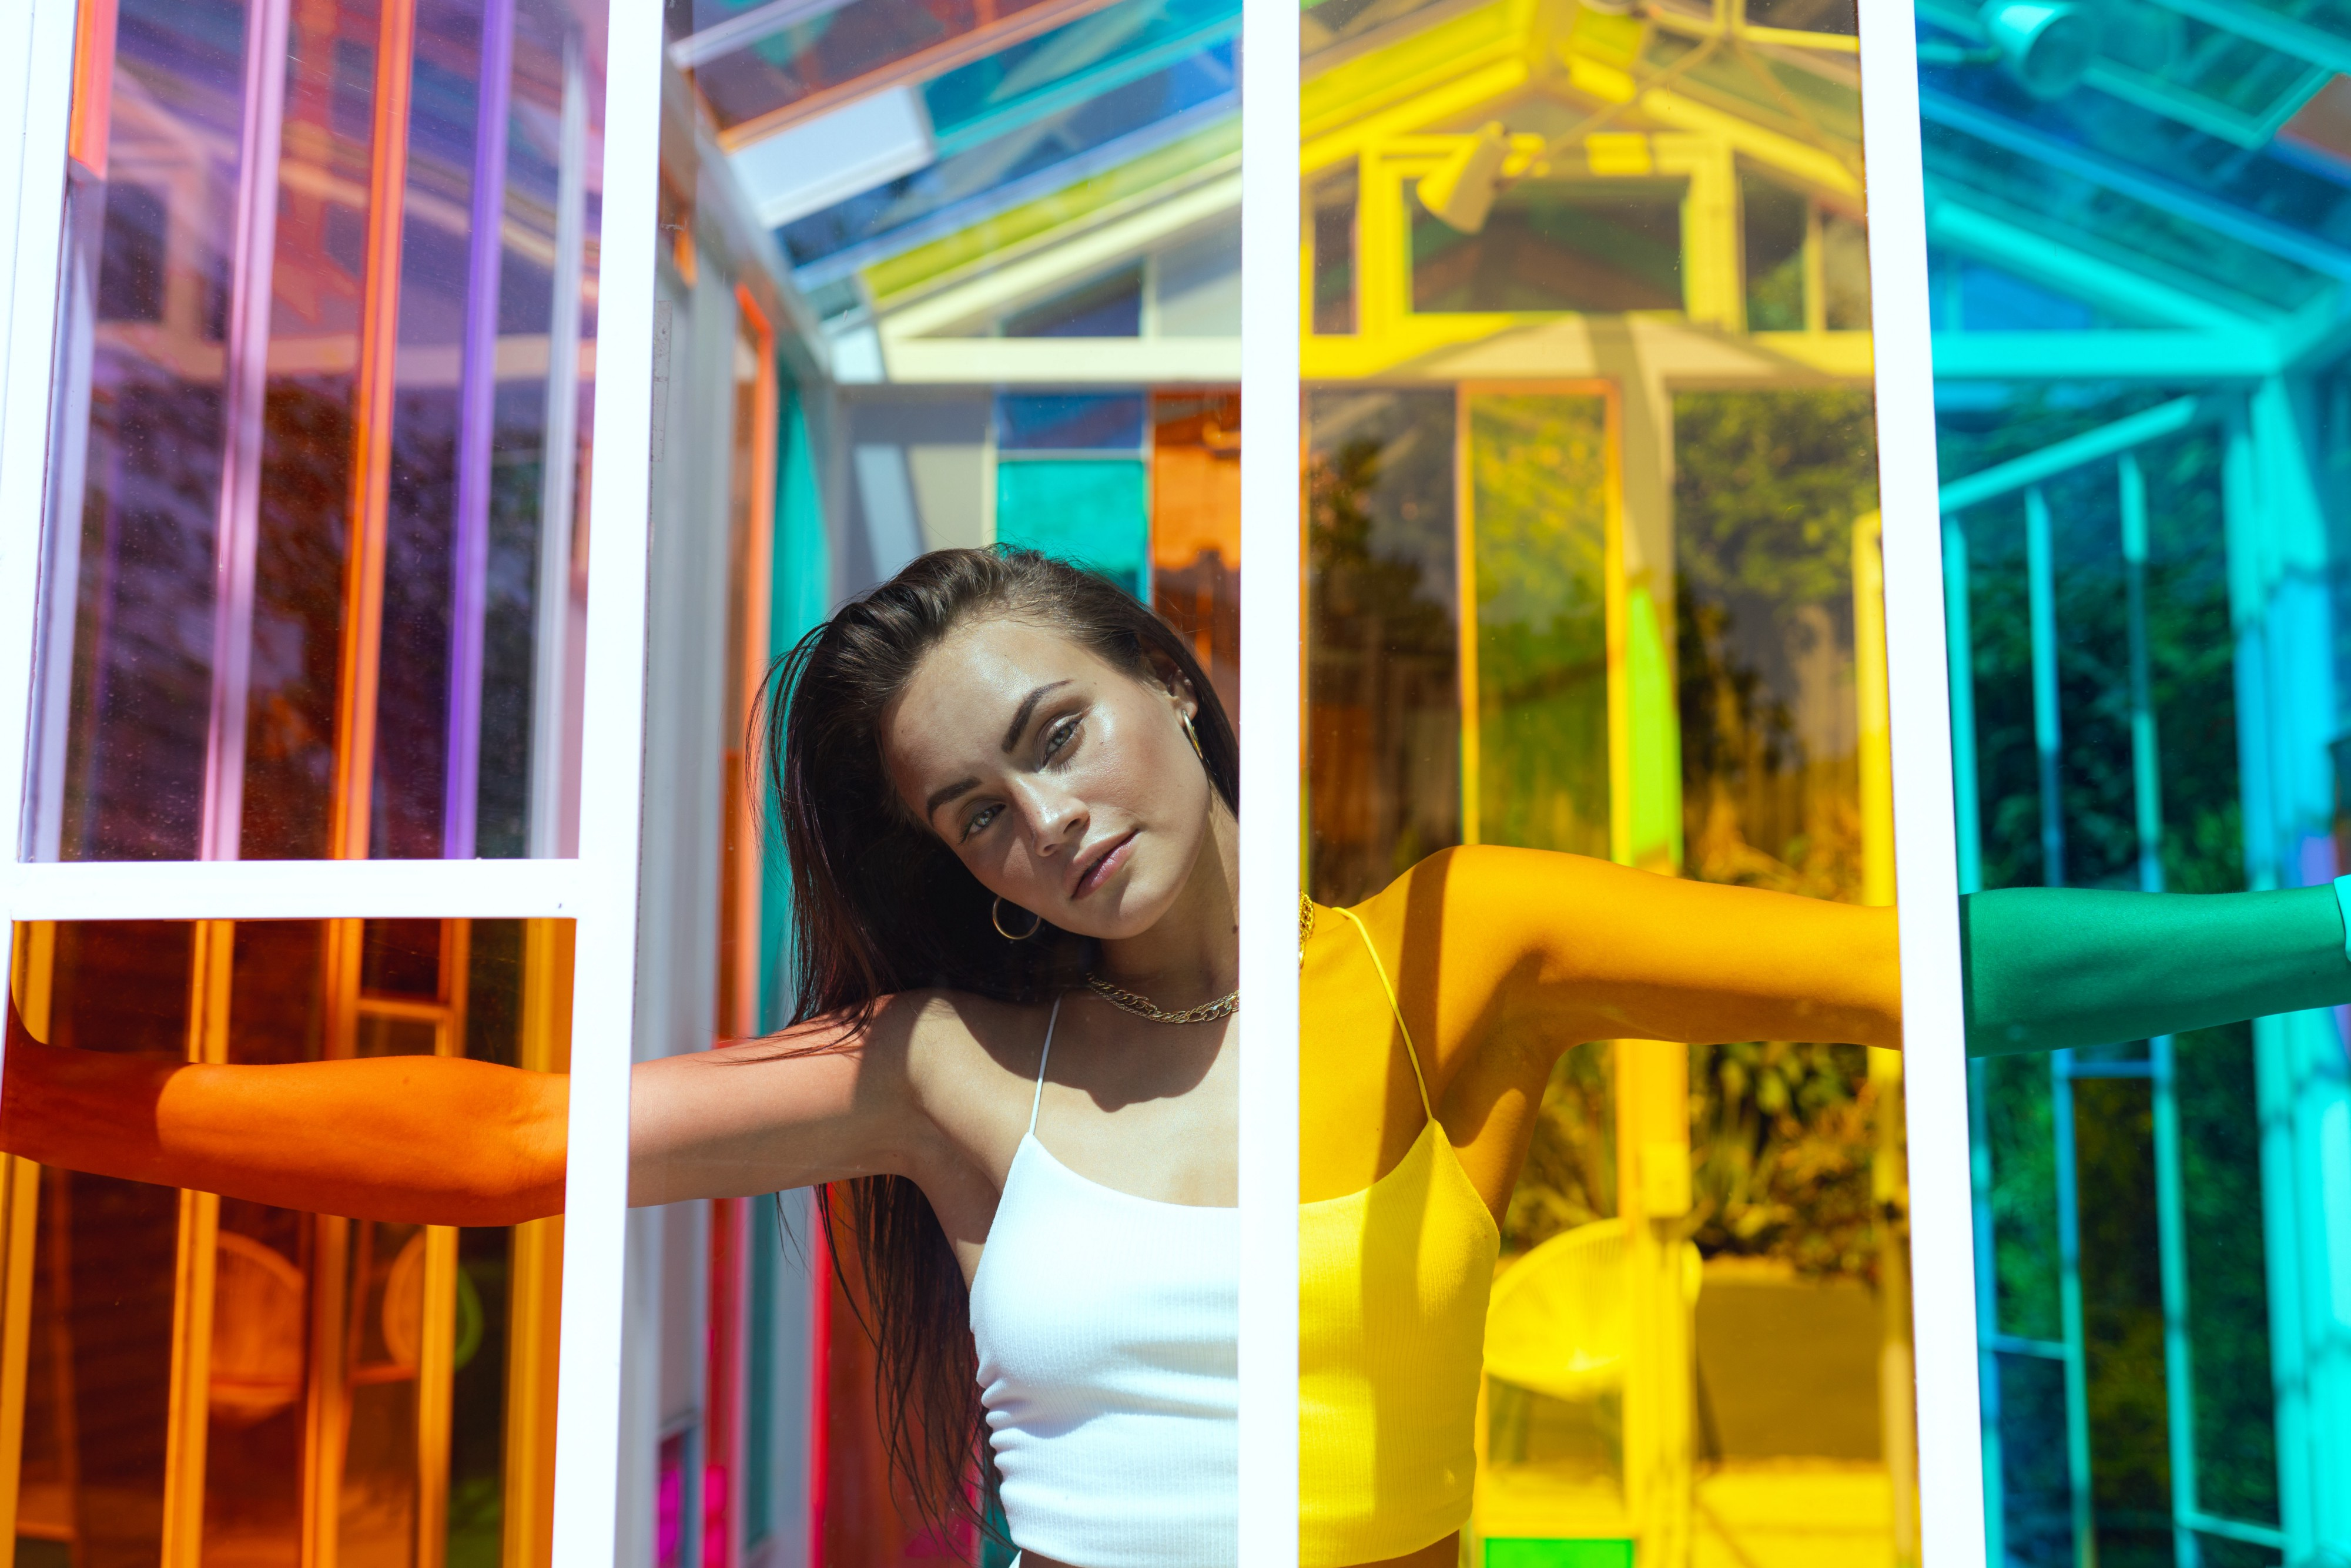 A woman with long dark hair in a white tank top casually looks through a gap in a house of colored panels